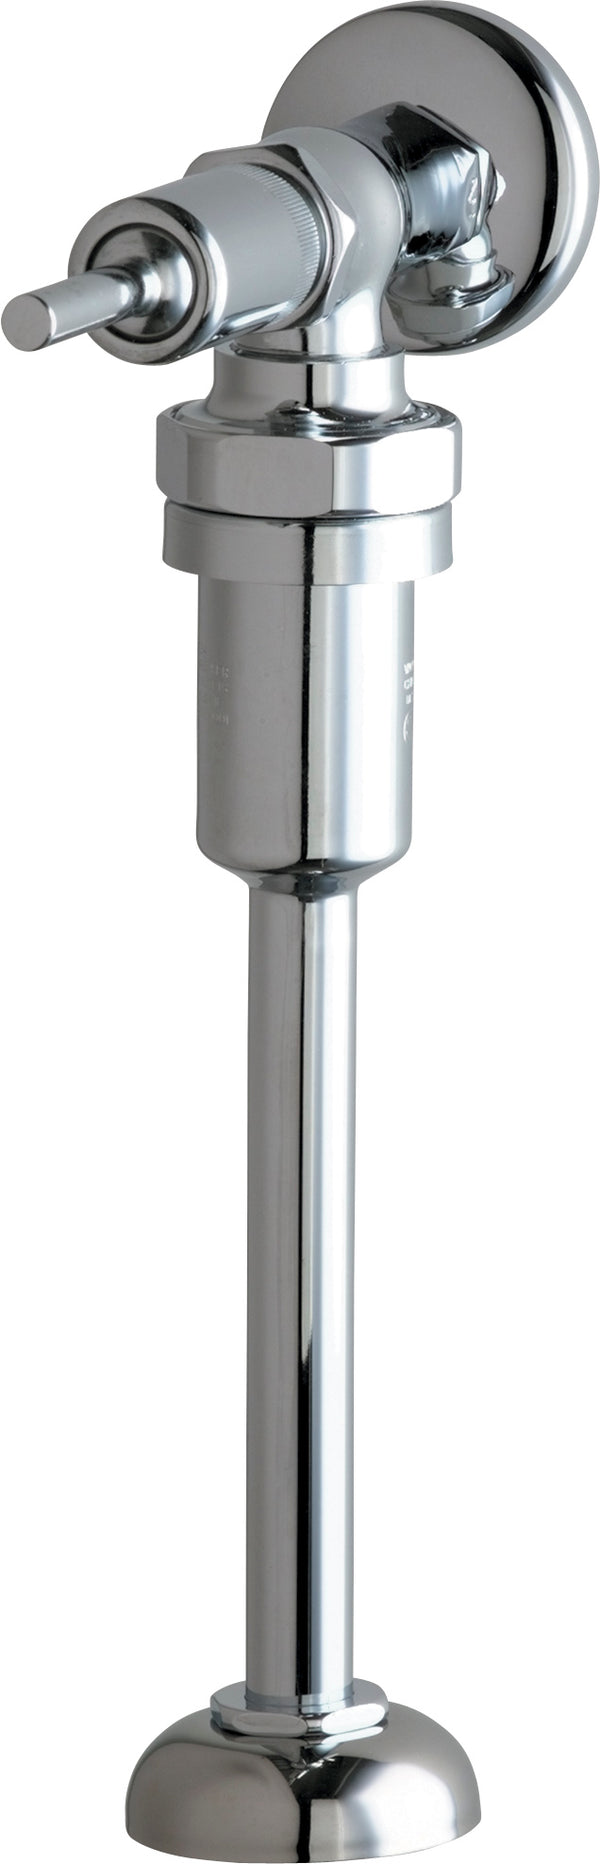 Chicago Faucets 732-OHVBCP Urinal Valve